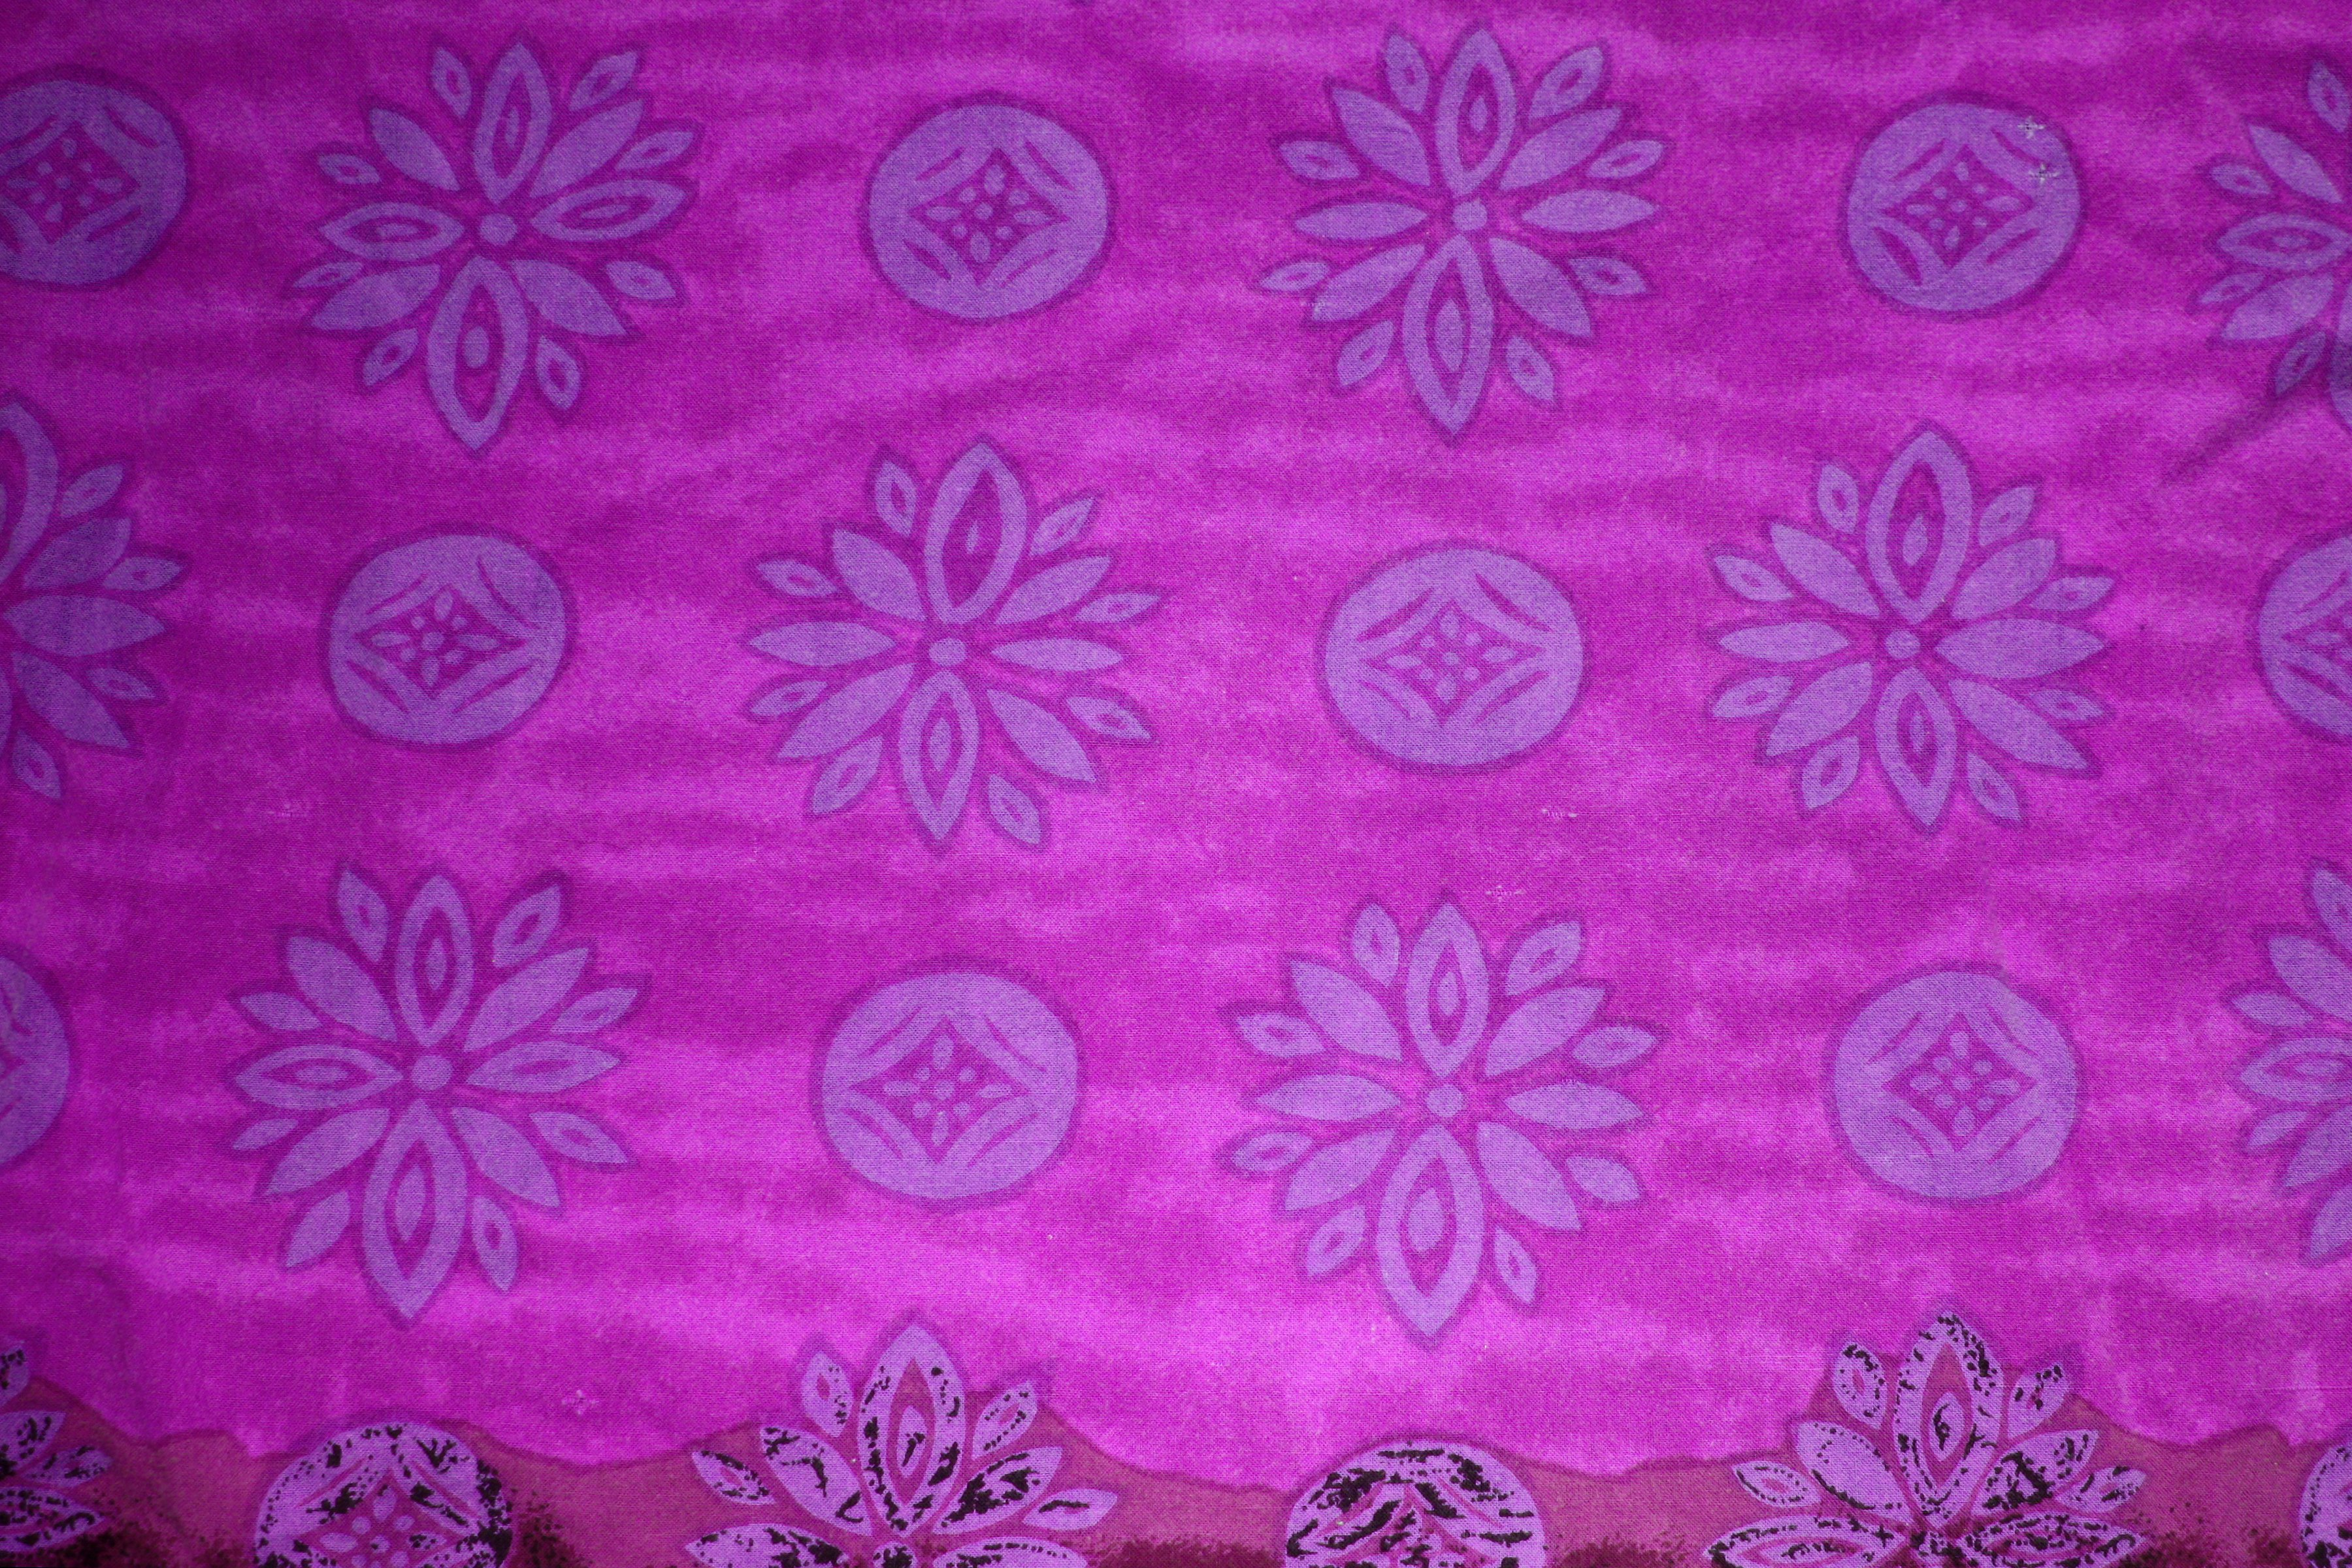 Hot Pink Fabric Texture With Purple Flowers And Circles Picture